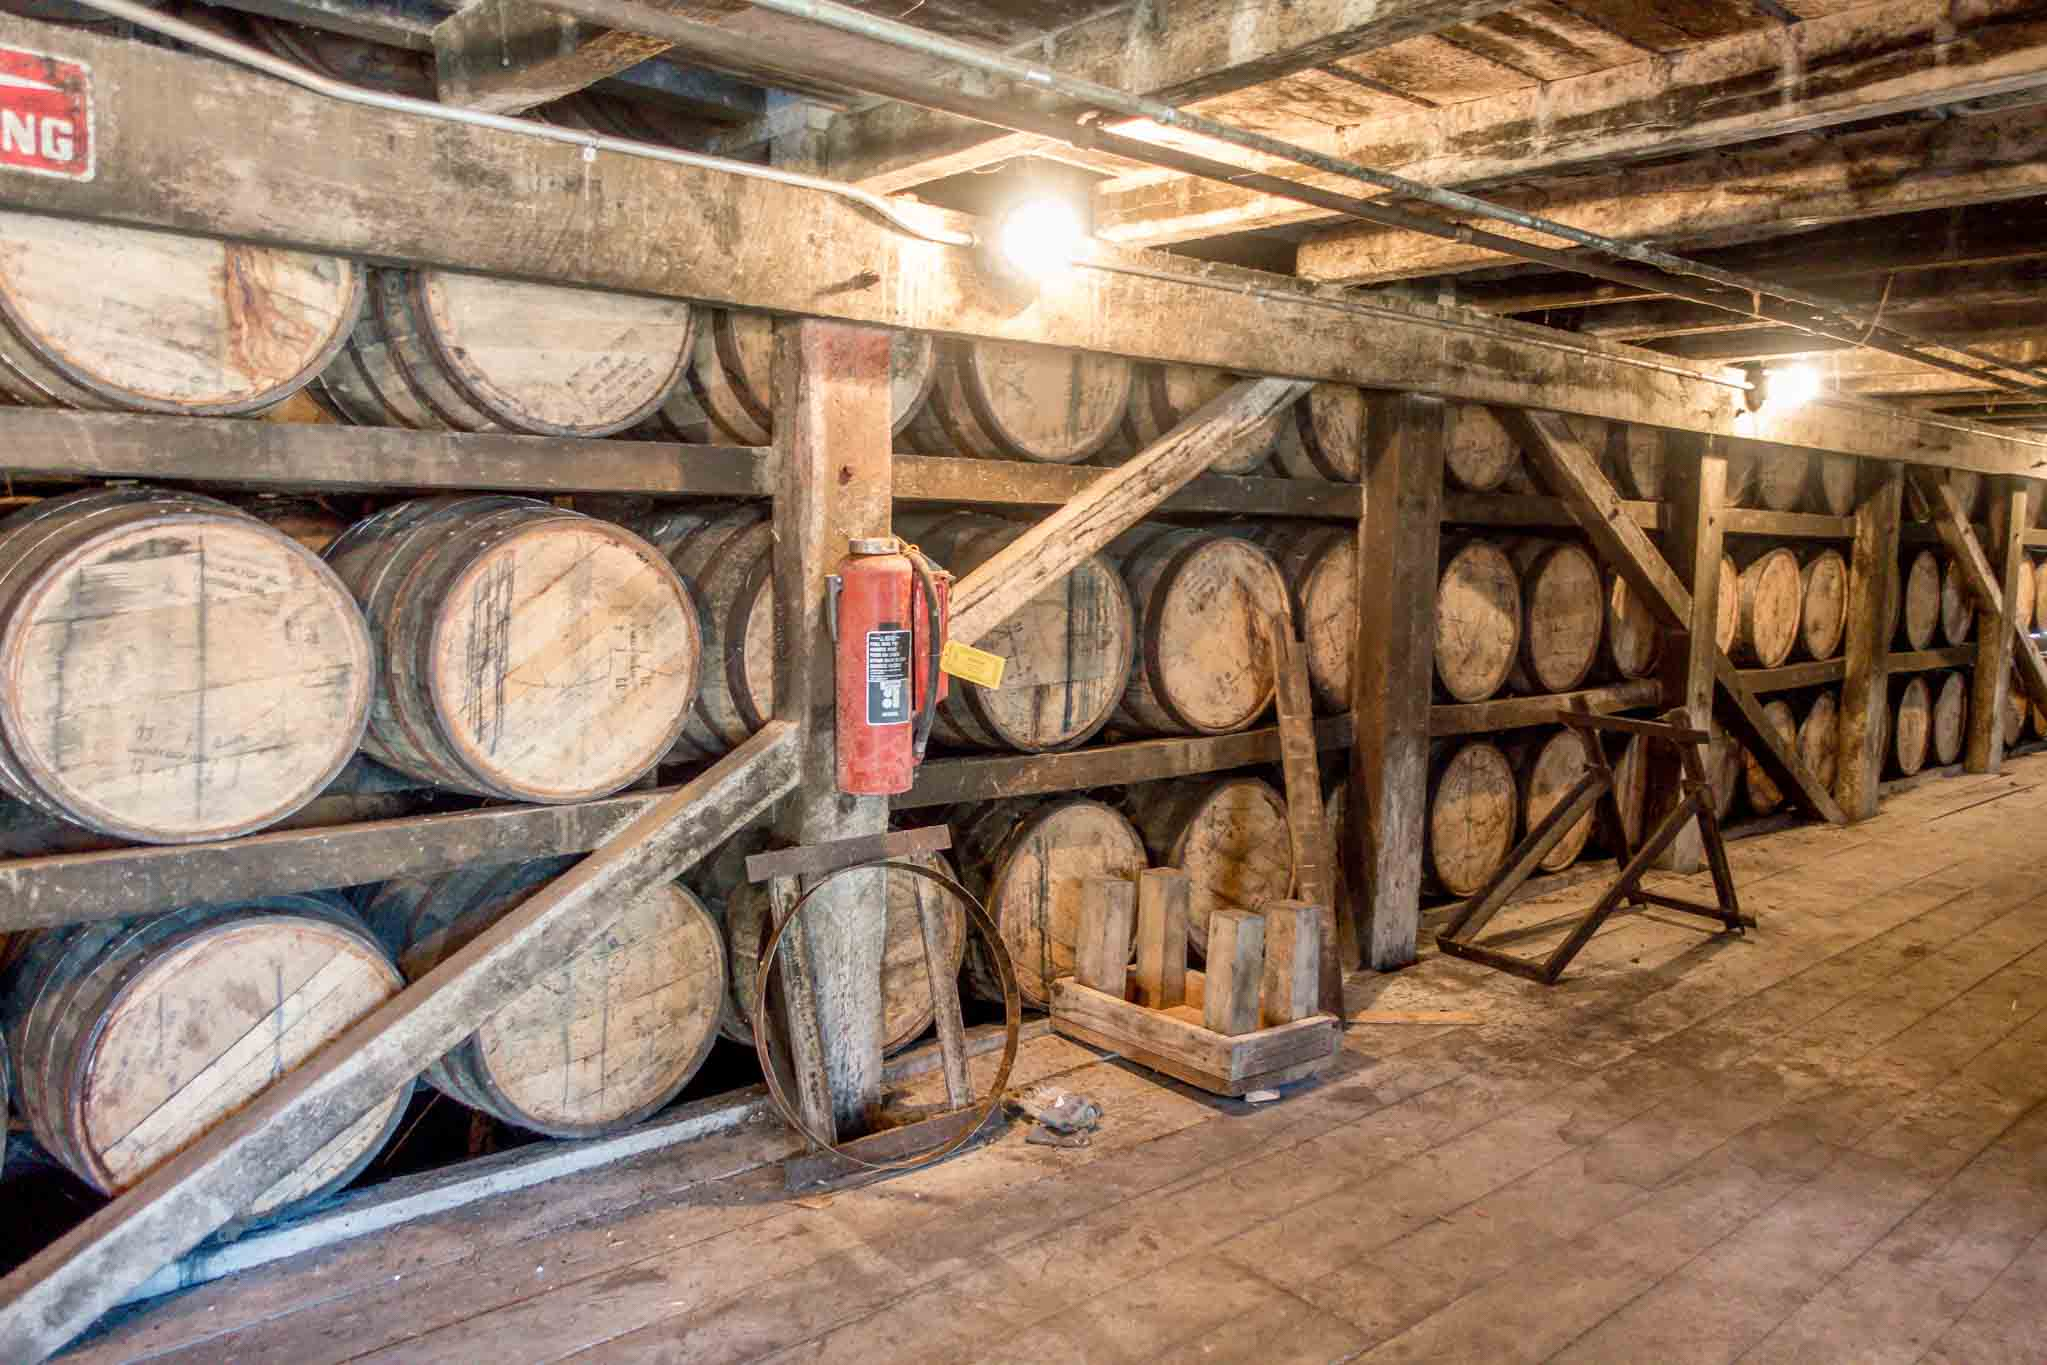 Whiskey barrels in storage at Jack Daniels distillery in Lynchburg Tennessee